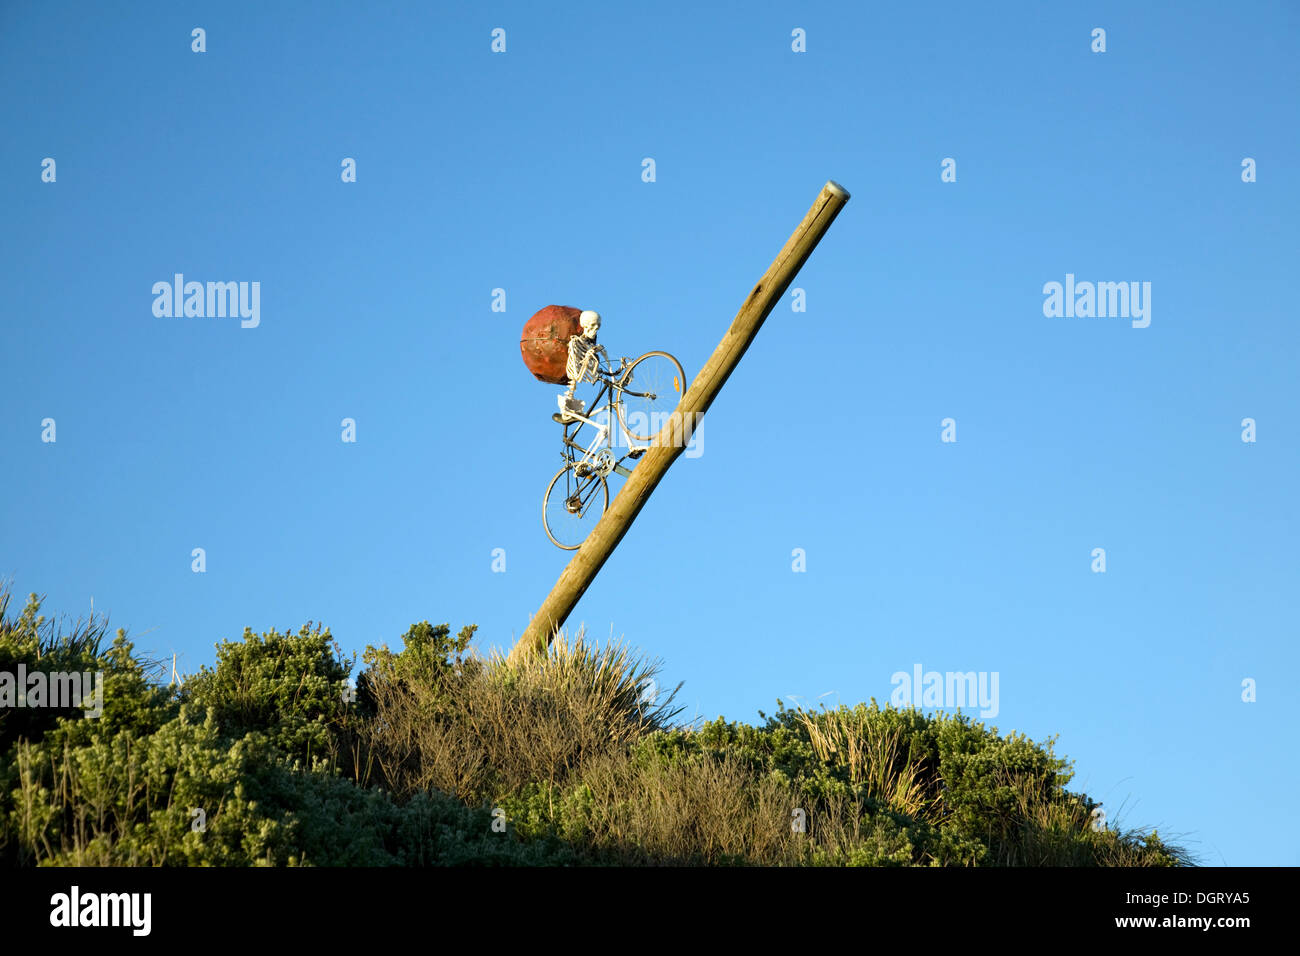 Sydney, Australia. 24th Oct, 2013. Sculpture by the Sea is an annual event along the coast between Bondi and Tamarama beaches in Sydney. Pictured is Theres many a slip...by Ken Unsworth © martin berry/Alamy Live News - Stock Image